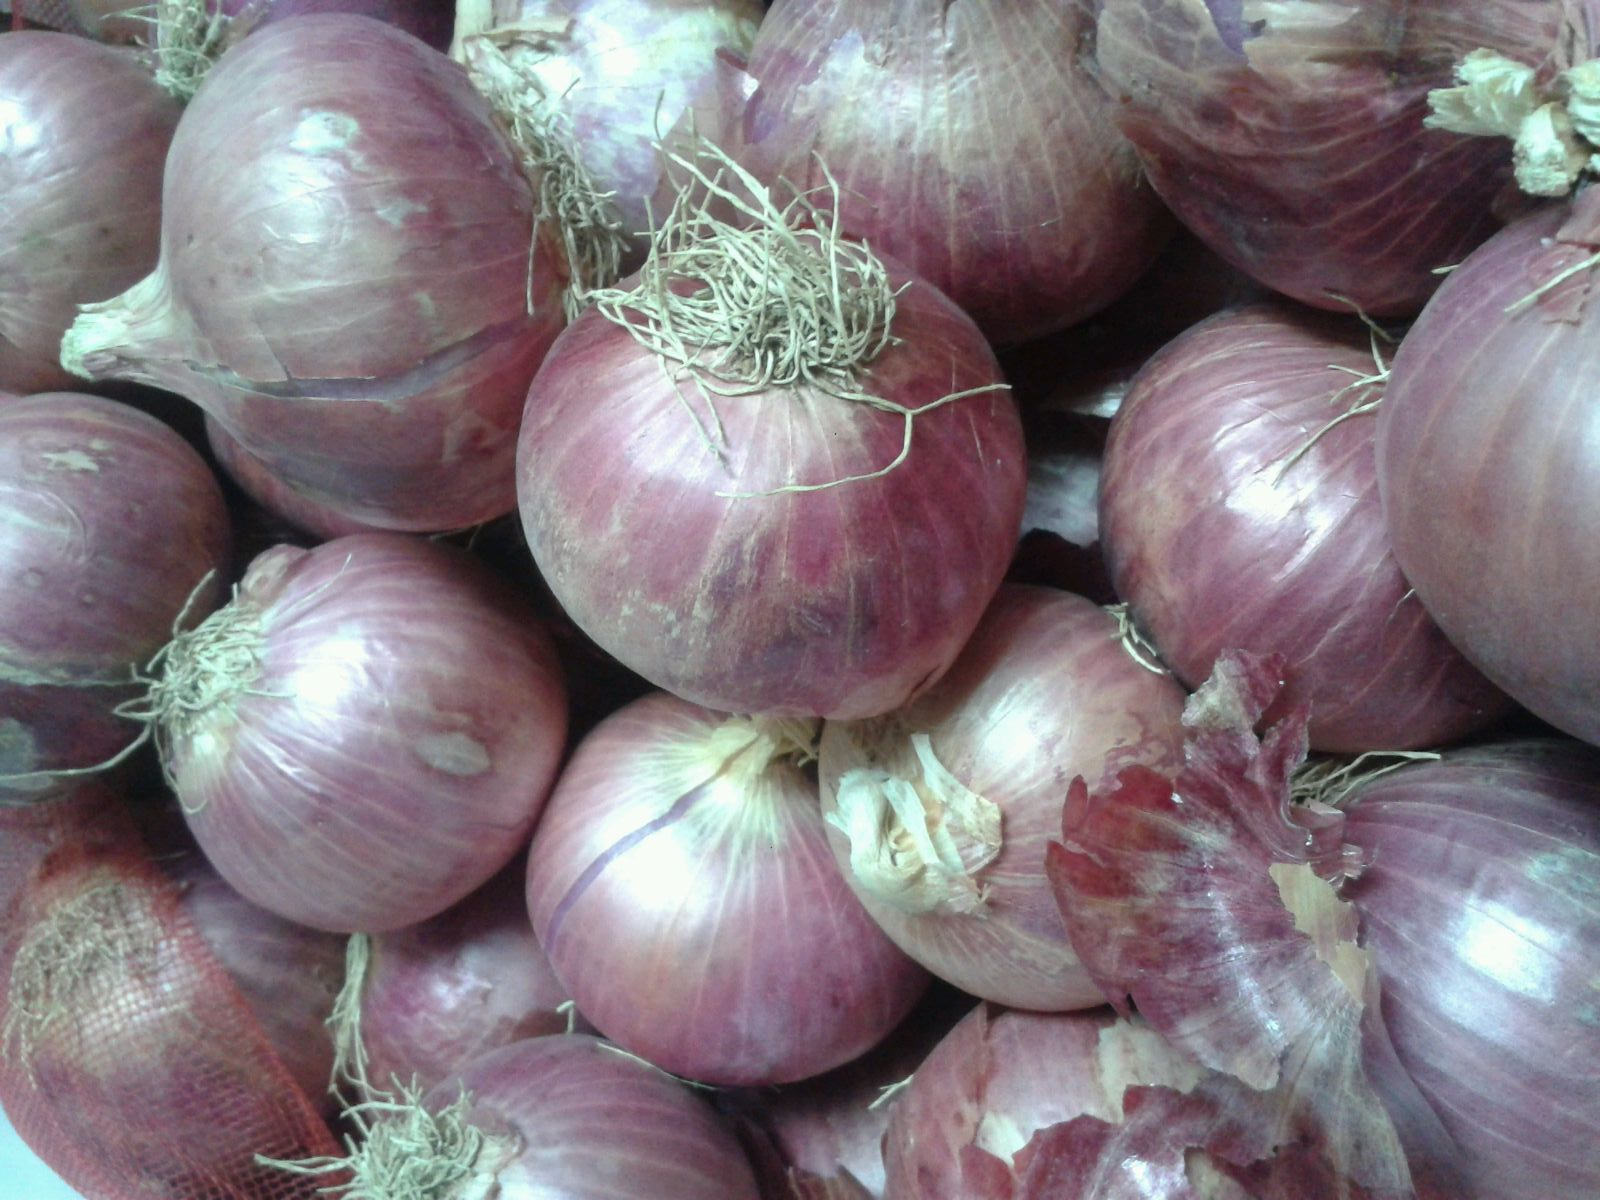 Big Onion (Bombay / Mumbai Onion) 250 g